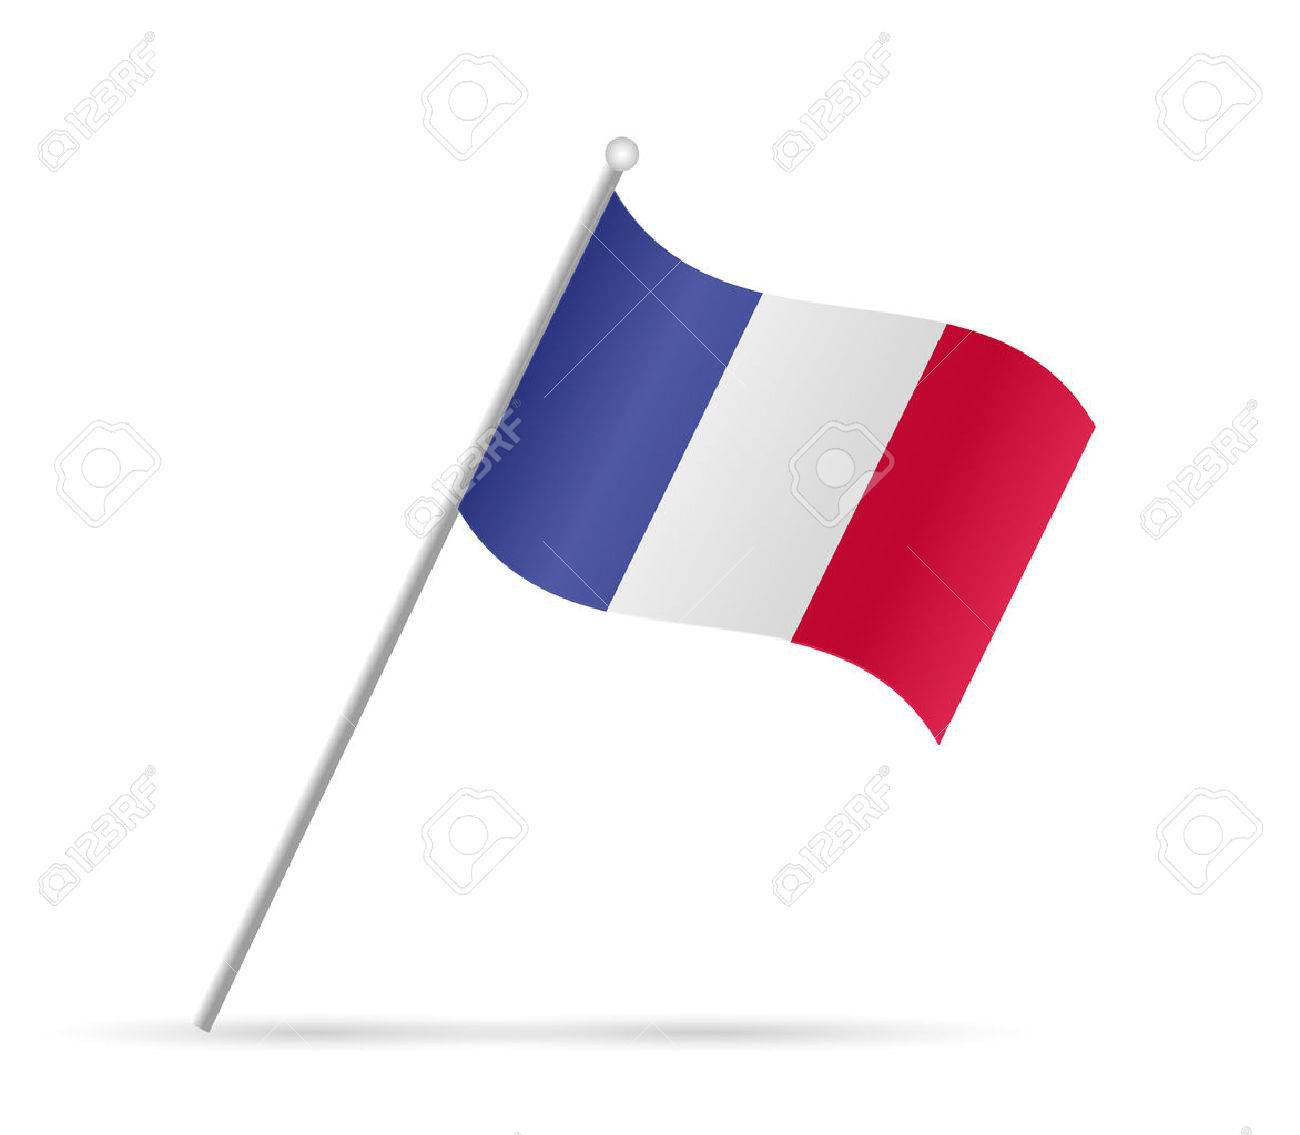 Illustration of a flag from France isolated on a white background. - 49971429